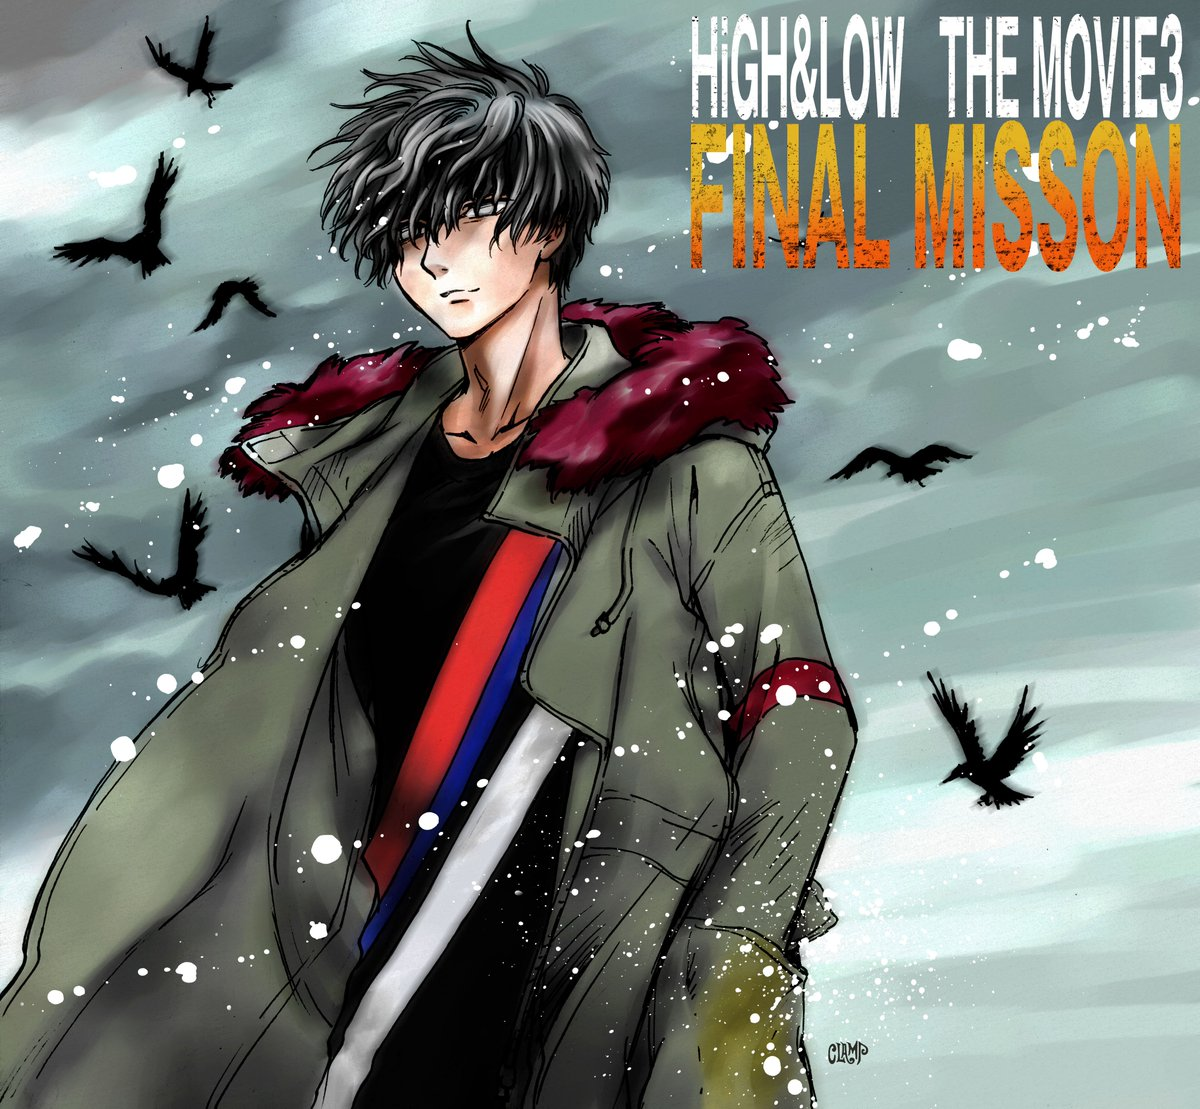 『HiGH&LOW THE MOVIE 3 / FINAL MISSION』週末興行ランキング第1位…